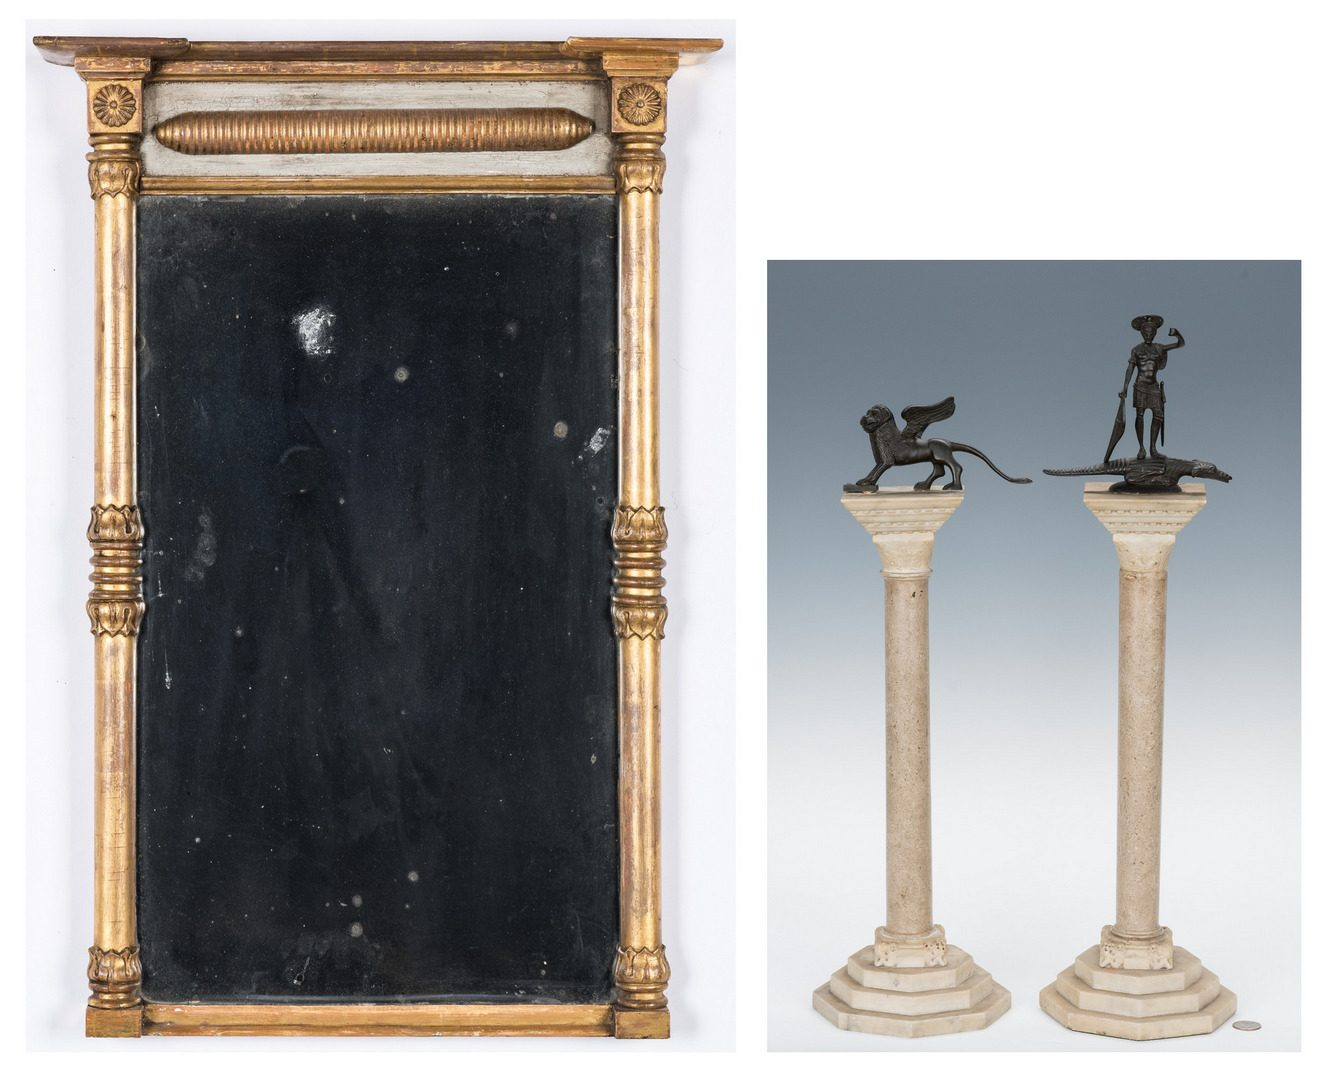 Lot 622: Regency Mirror and 2 Columns with Figures